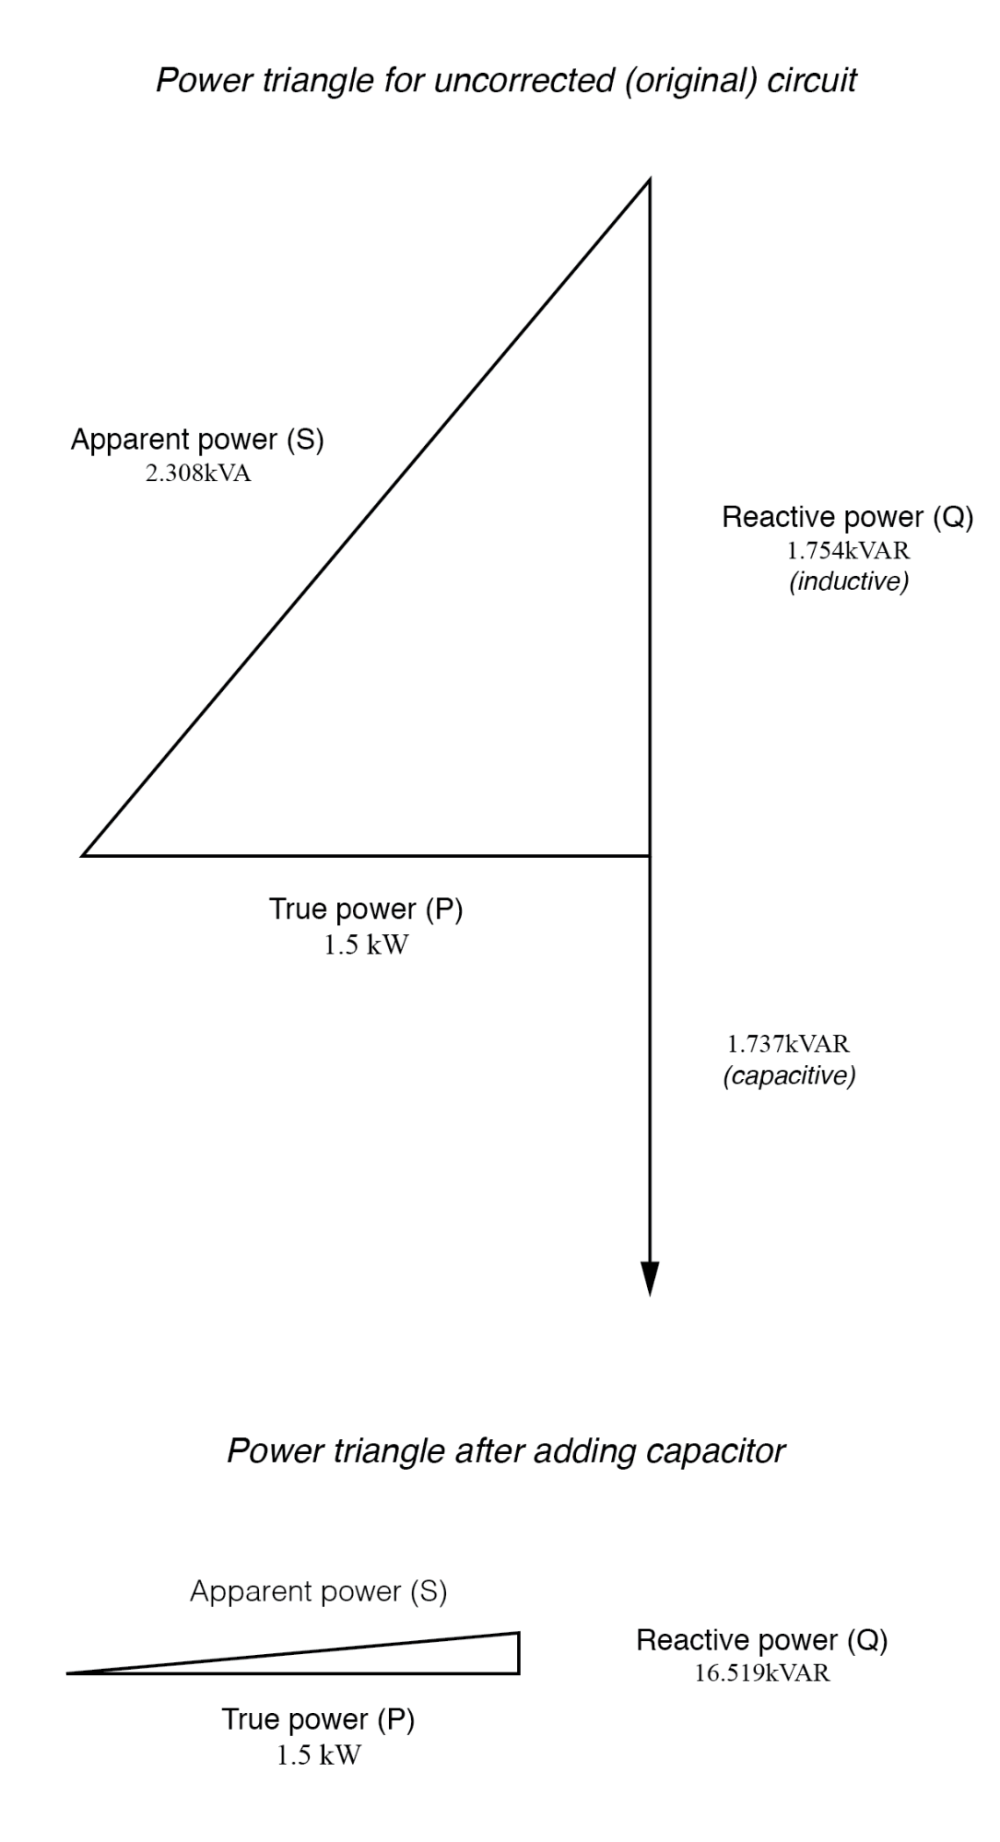 medium resolution of power triangle before and after capacitor correction